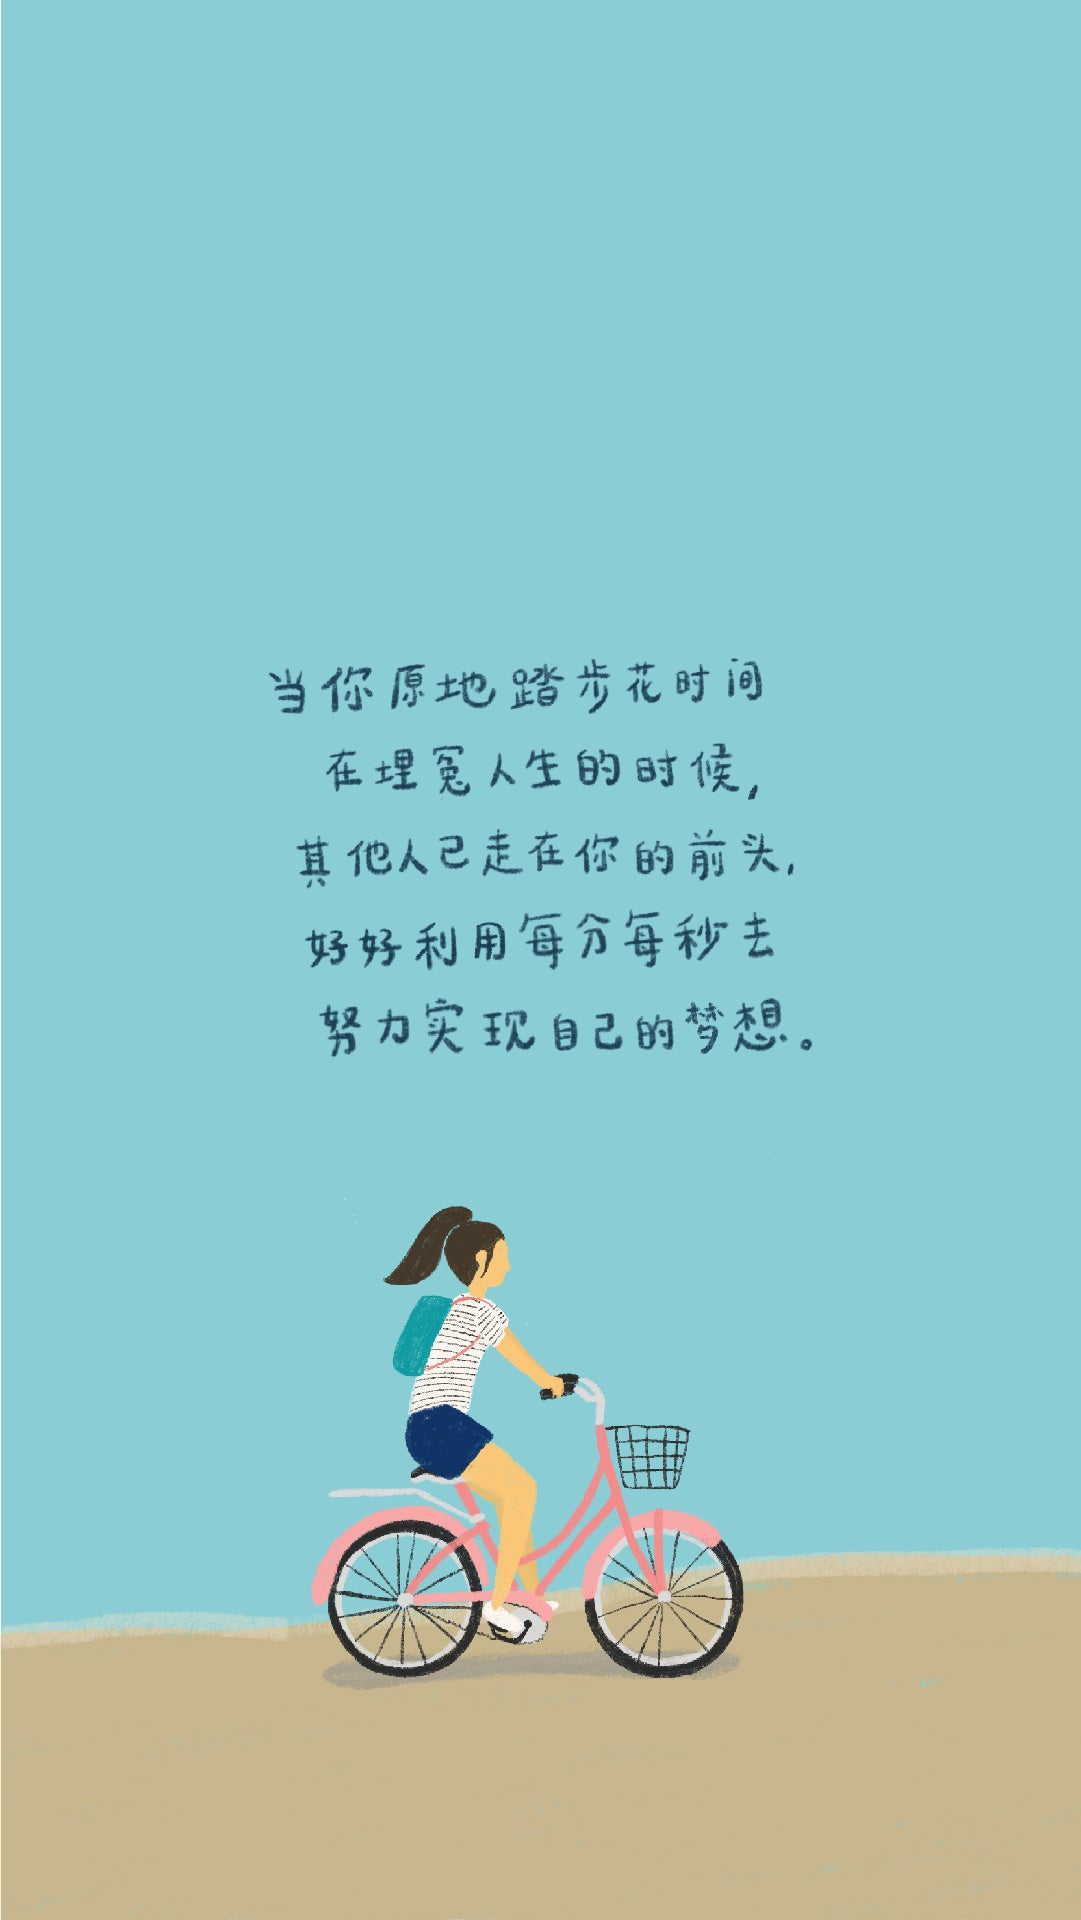 Wallpaper with a drawing of a girl in sports attire riding a bicycle on the ground against a blue background with a quote on top of the drawing about utilising time wisely